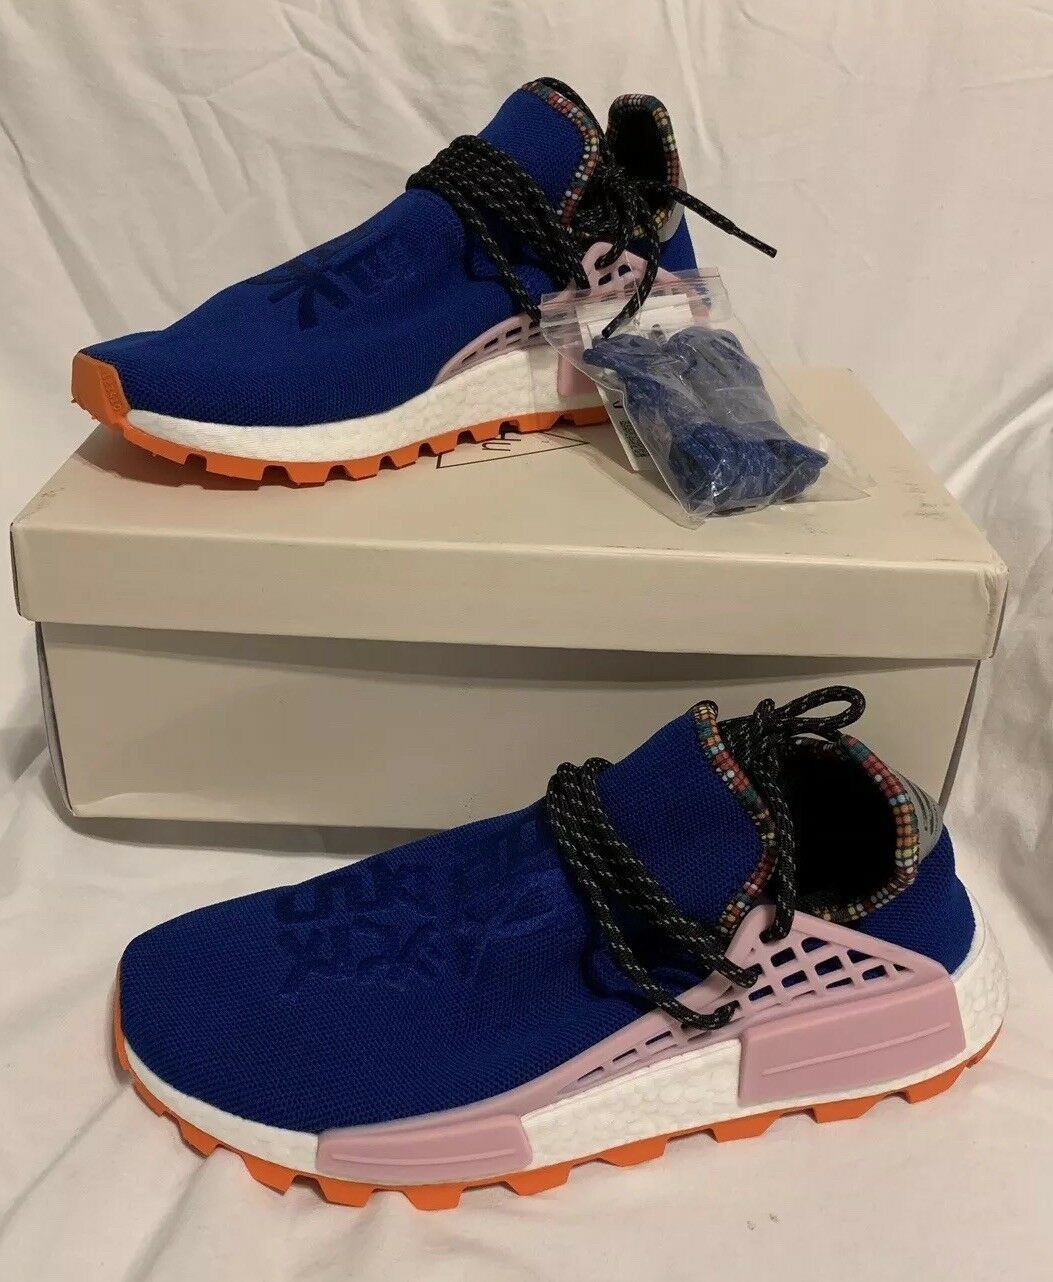 Adidas x Pharrell Williams Solar HU NMD bluee Size UK 9 EU 43 US 9.5 EE7579 BNIB